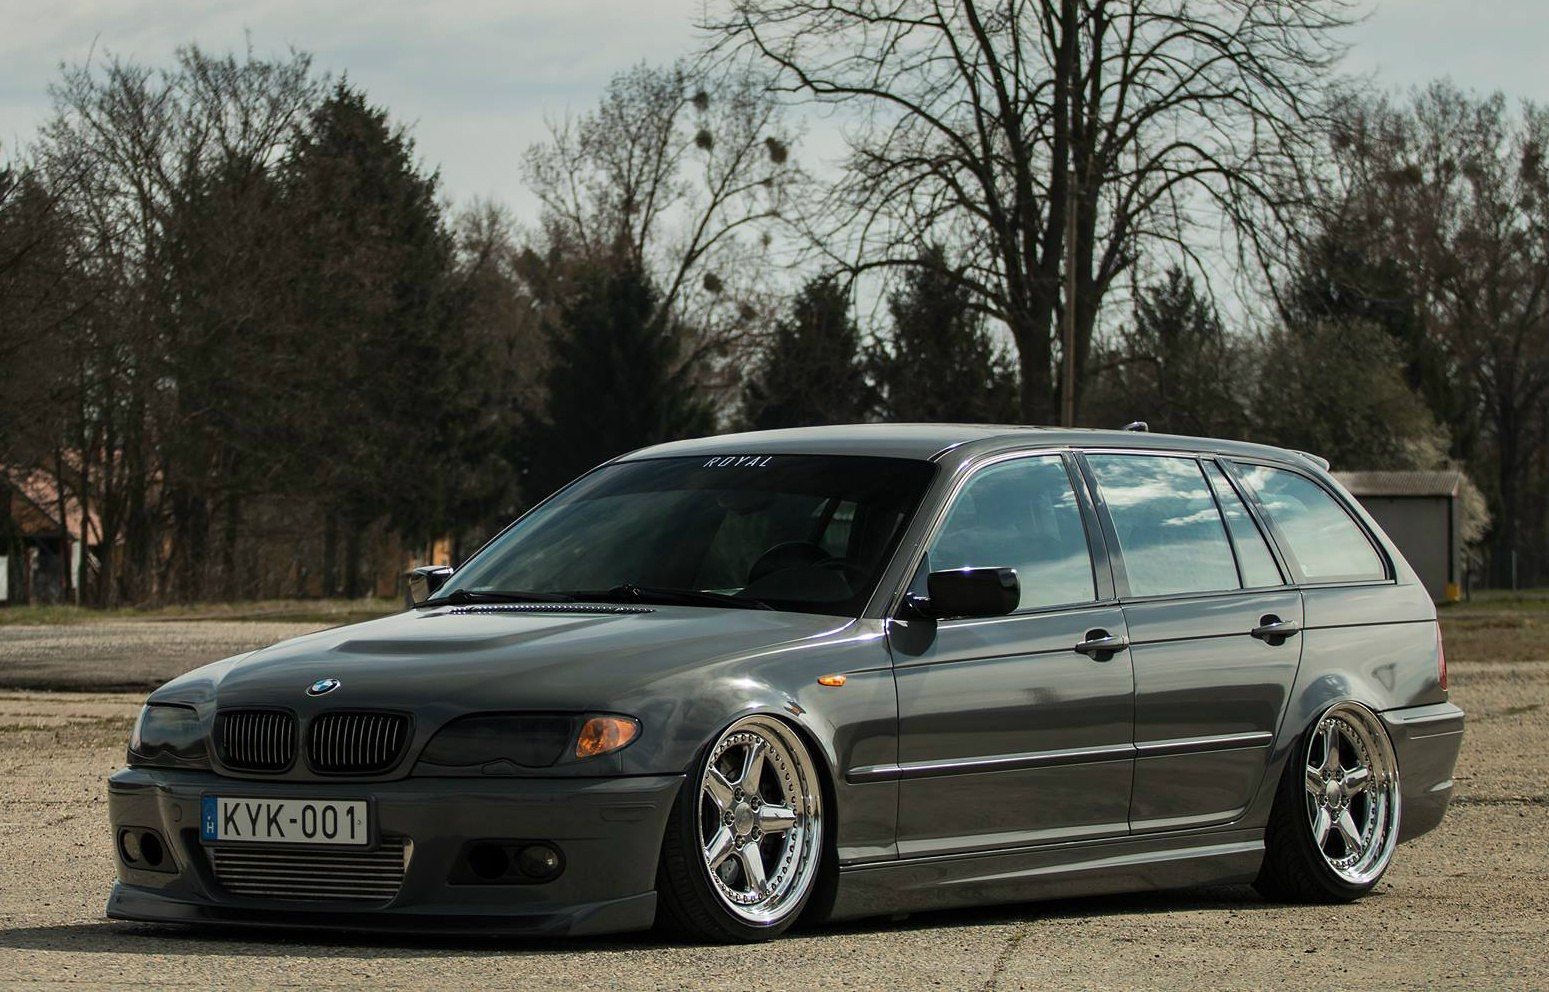 bmw e46 touring bmw 4ever pinterest bmw e46 bmw s bmw cars. Black Bedroom Furniture Sets. Home Design Ideas